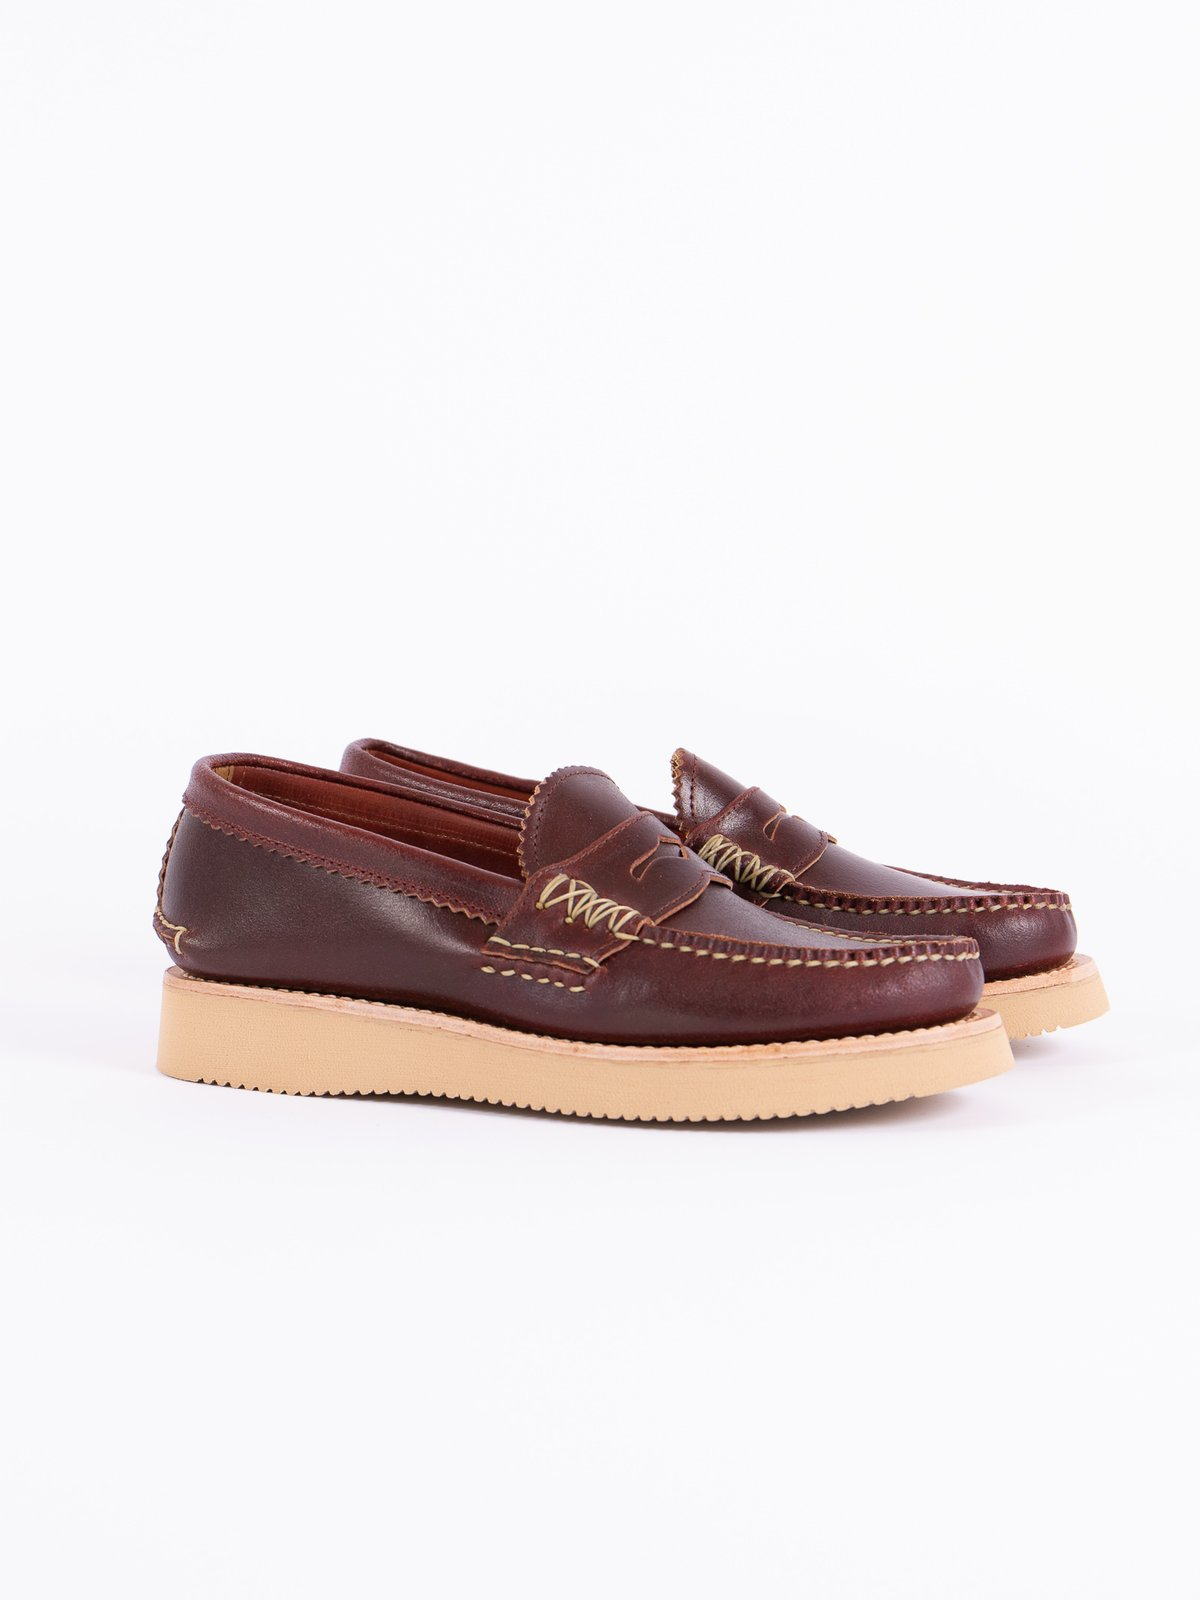 FO Wax Red Loafer Shoe Exclusive - Image 1